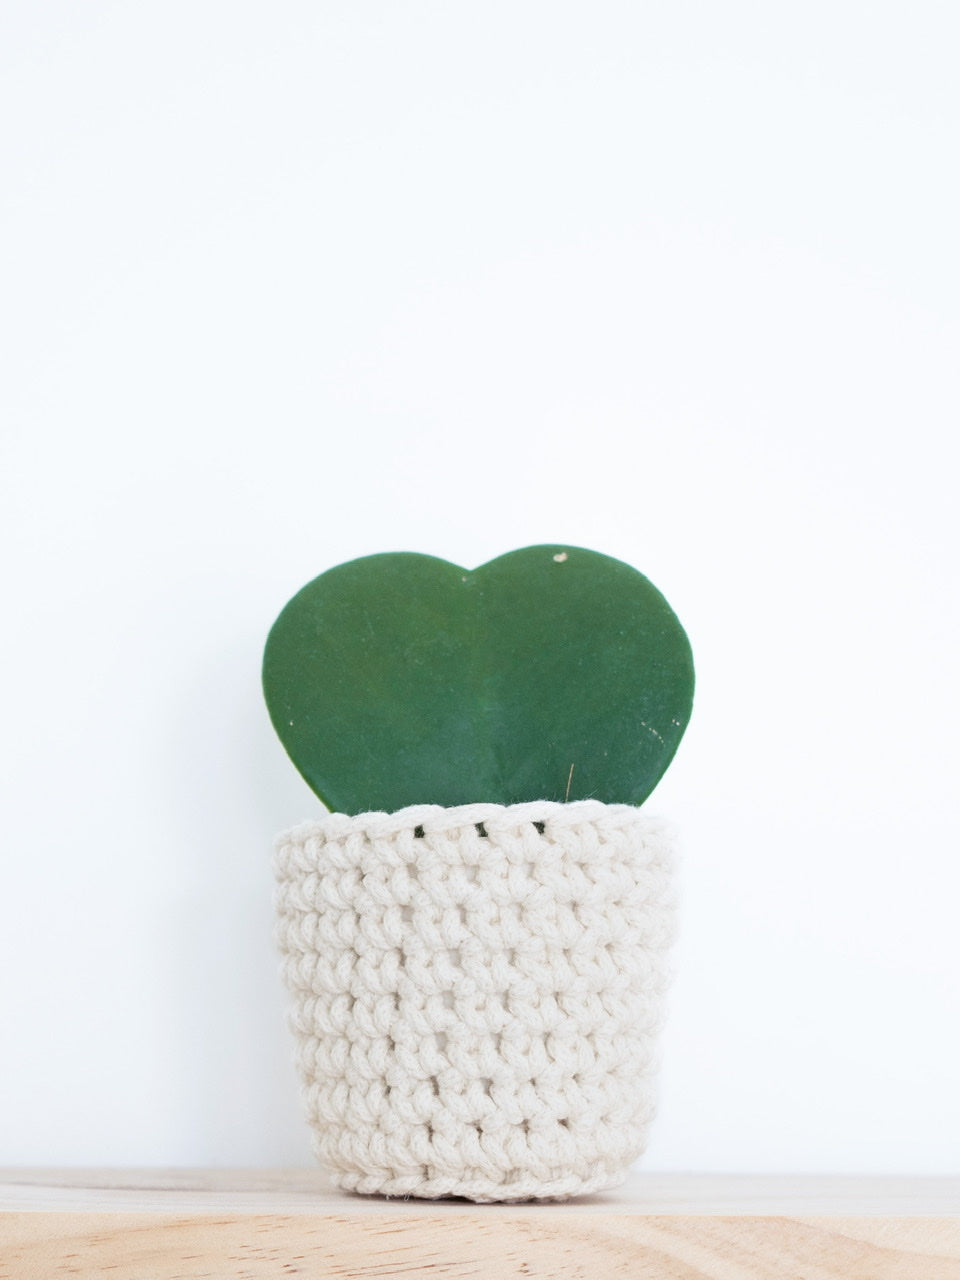 Mini eco plant pot - natural - Knttd coloured handmade plant pot cover made from recycled cotton yarn with watertight inner pot made from recycled plastic